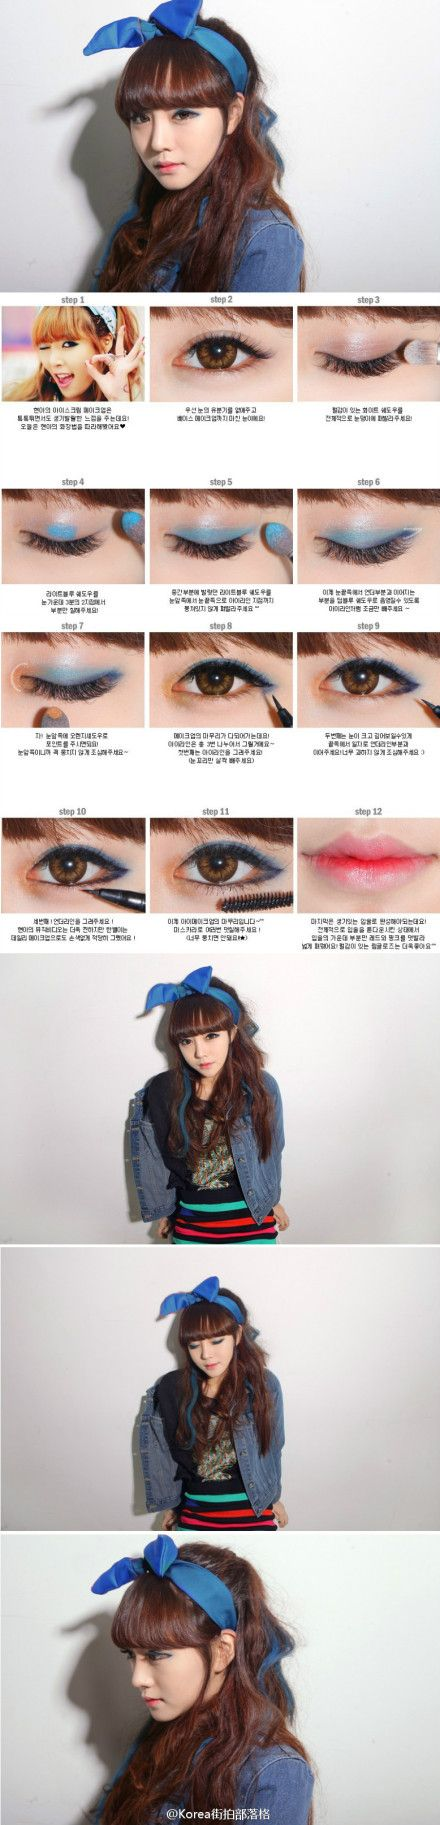 Shades of Blue EyeShadow on outter tips give illusion of bigger eyes for asian smaller eyes.